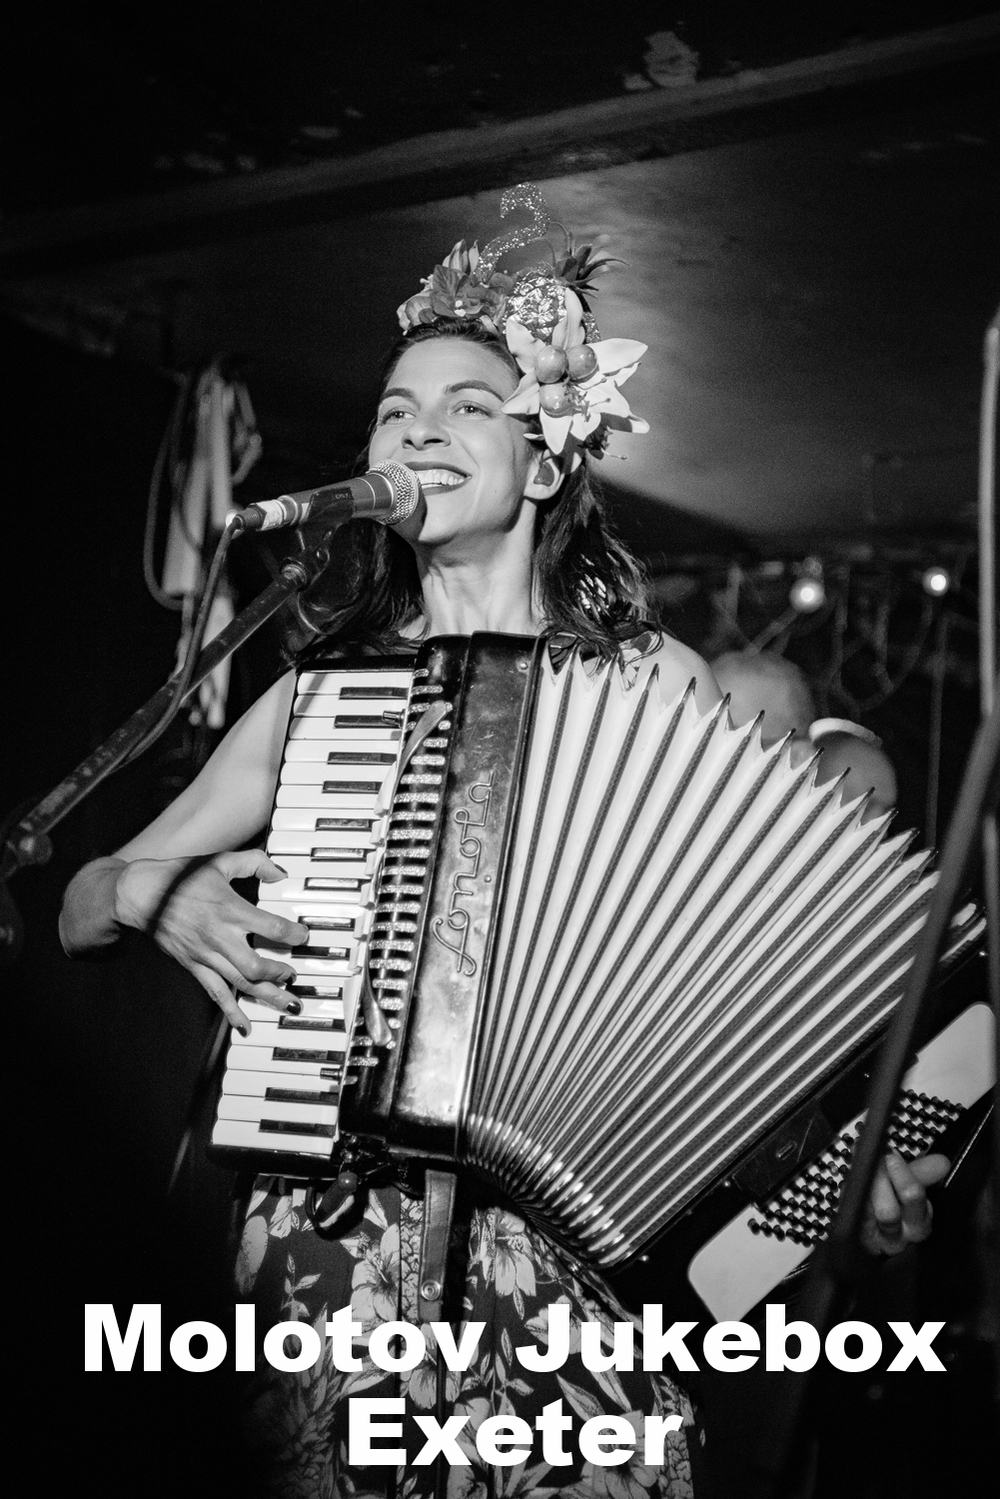 20160421-Molotov Jukebox-8418-10.jpg